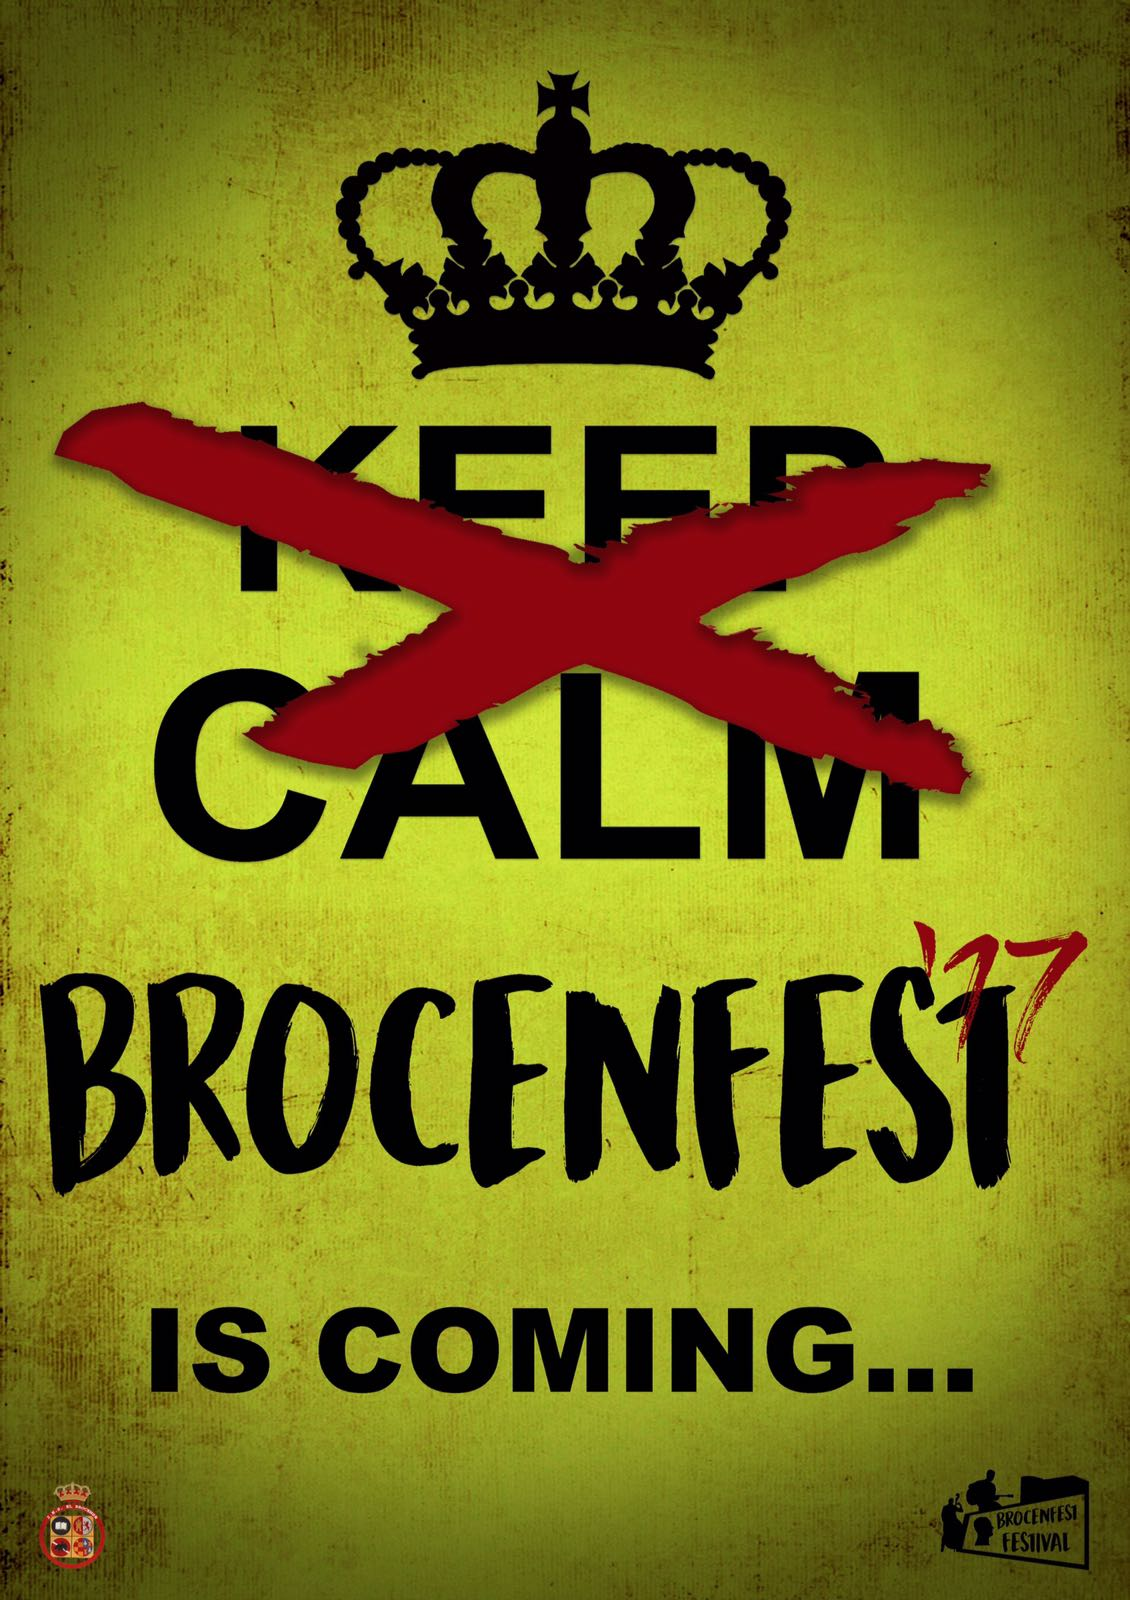 brocenfest coming